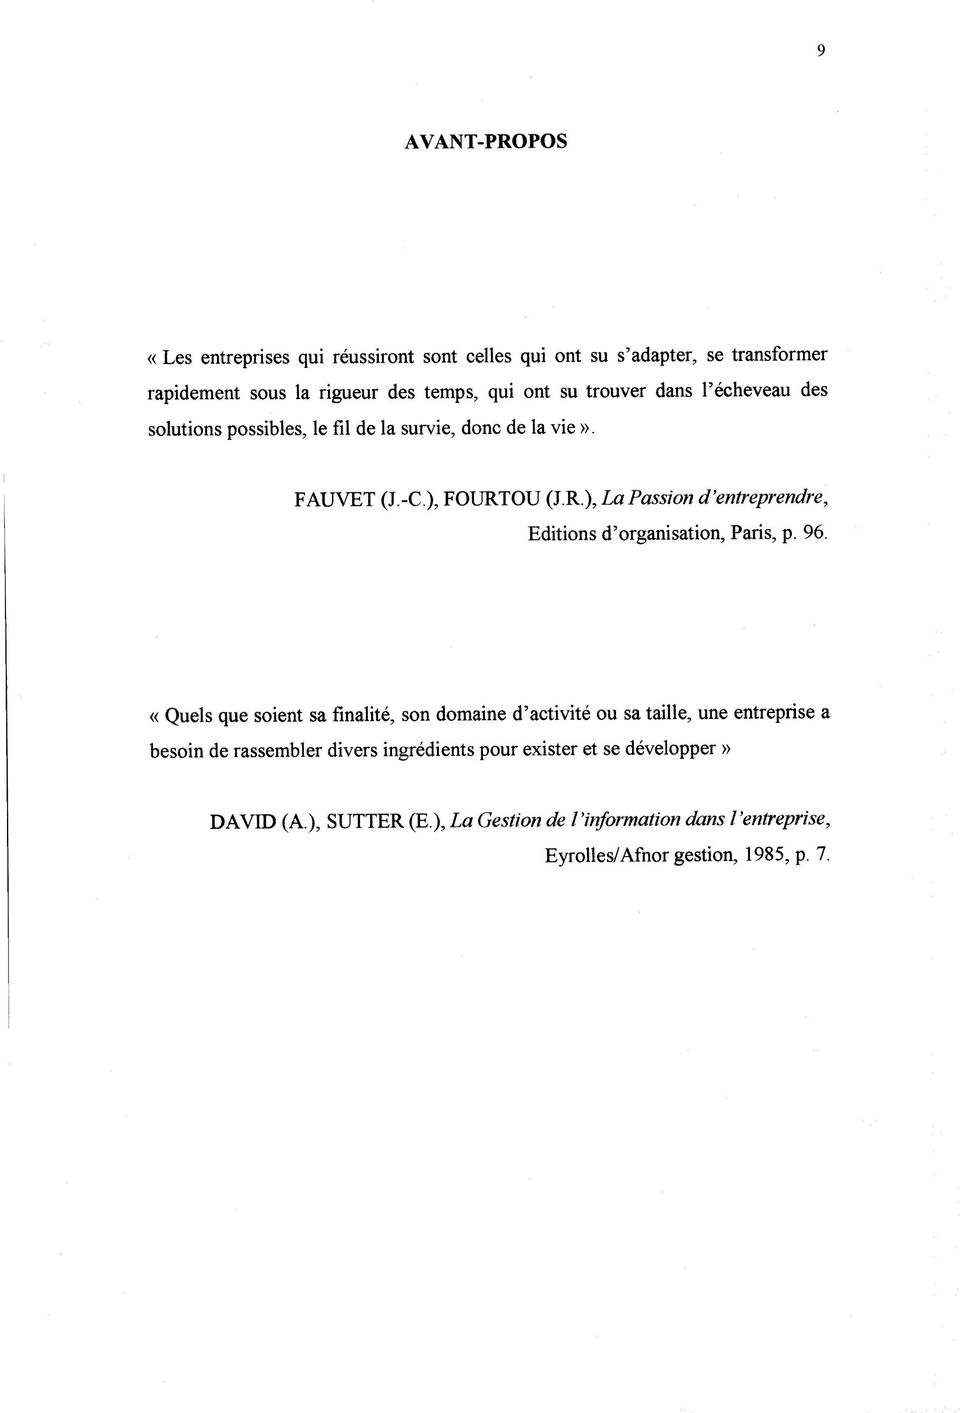 OU (J.R.), LaPassion d'entreprendre, Editions d'organisation, Paris, p. 96.